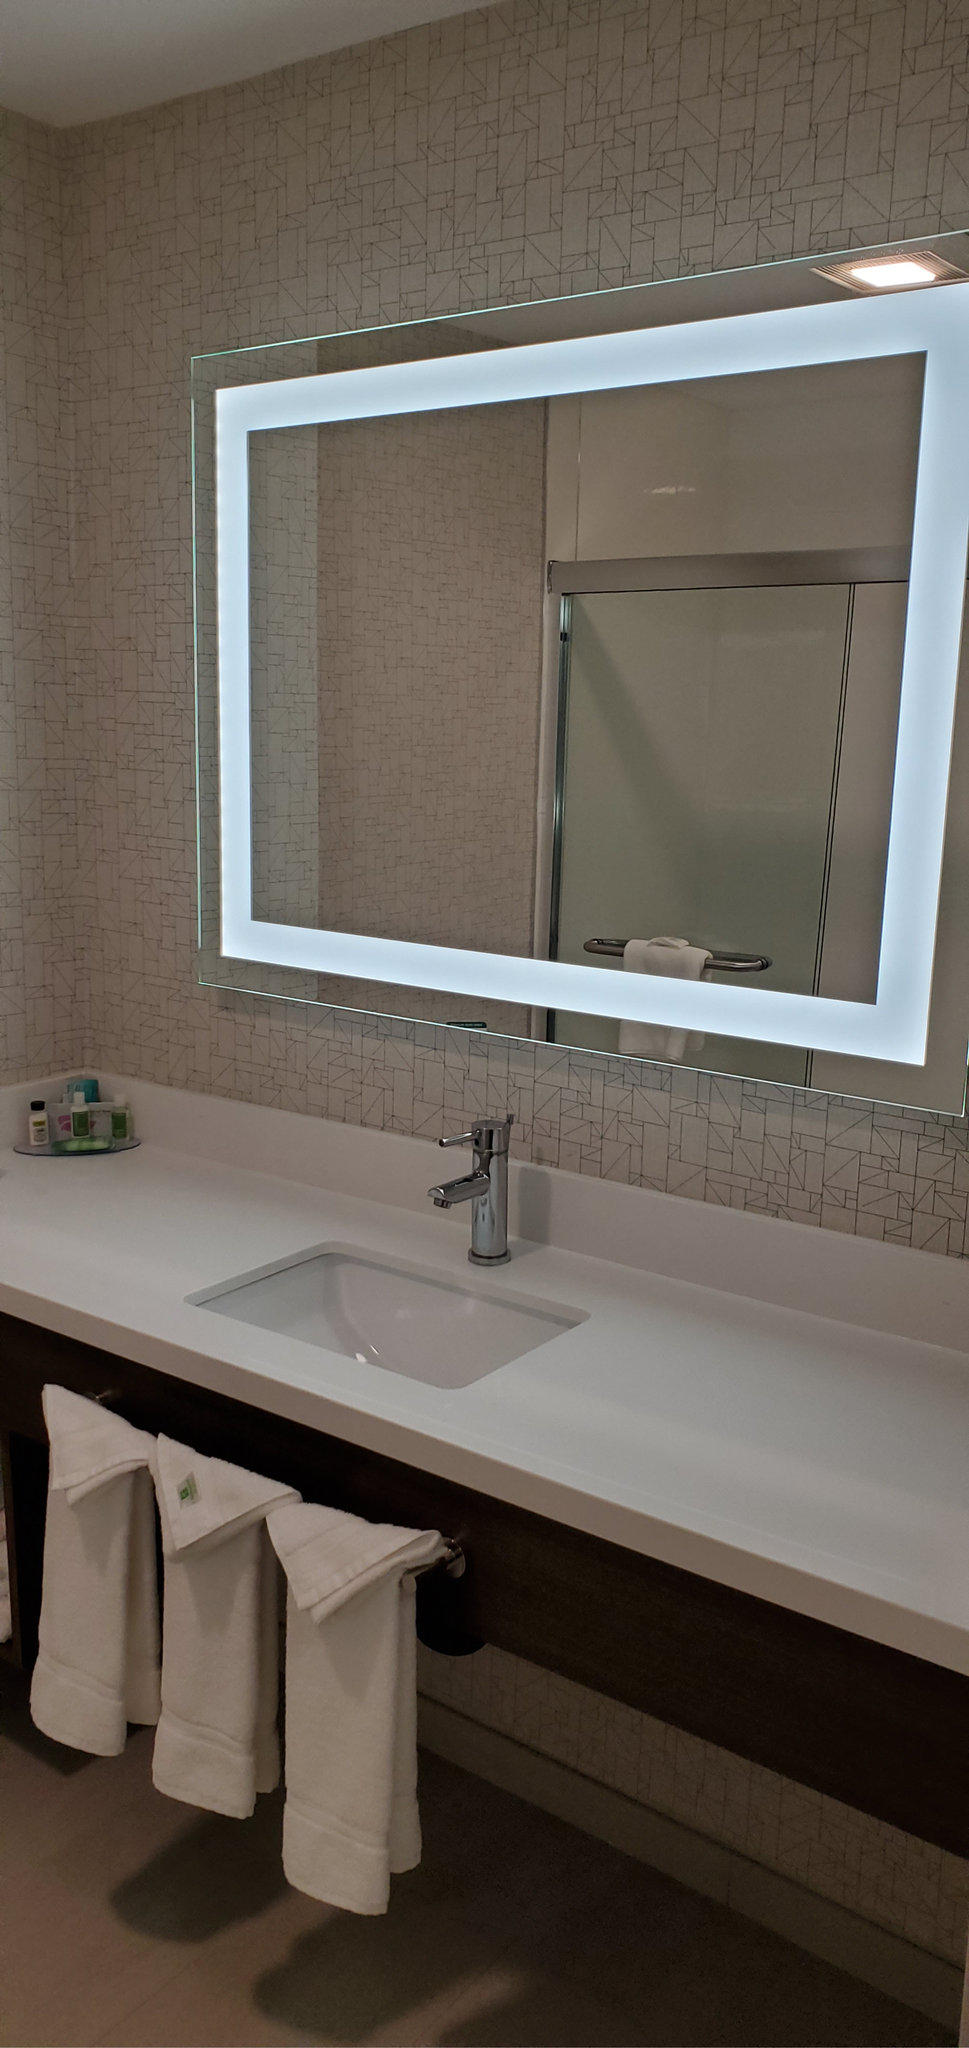 Holiday Inn Express & Suites Lake Forest - Irvine East